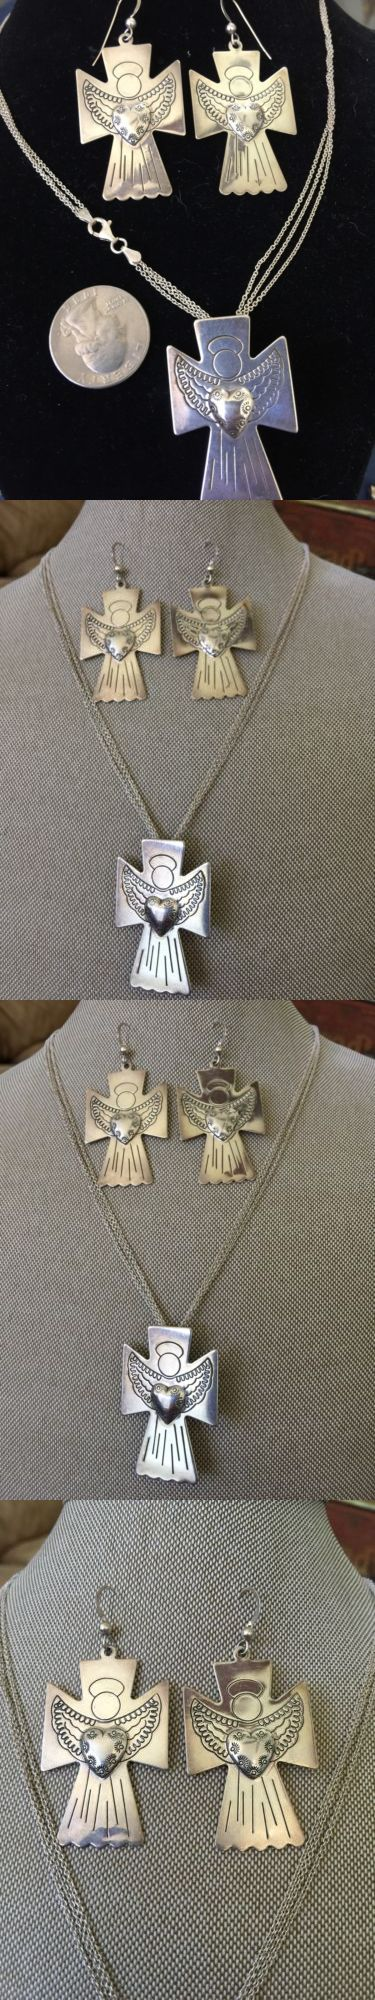 Precious Metal without Stones 164336: Carolyn Pollack Relios Qvc Sterling Silver Angel Cross Heart Brooch Pendant Set -> BUY IT NOW ONLY: $175 on eBay!